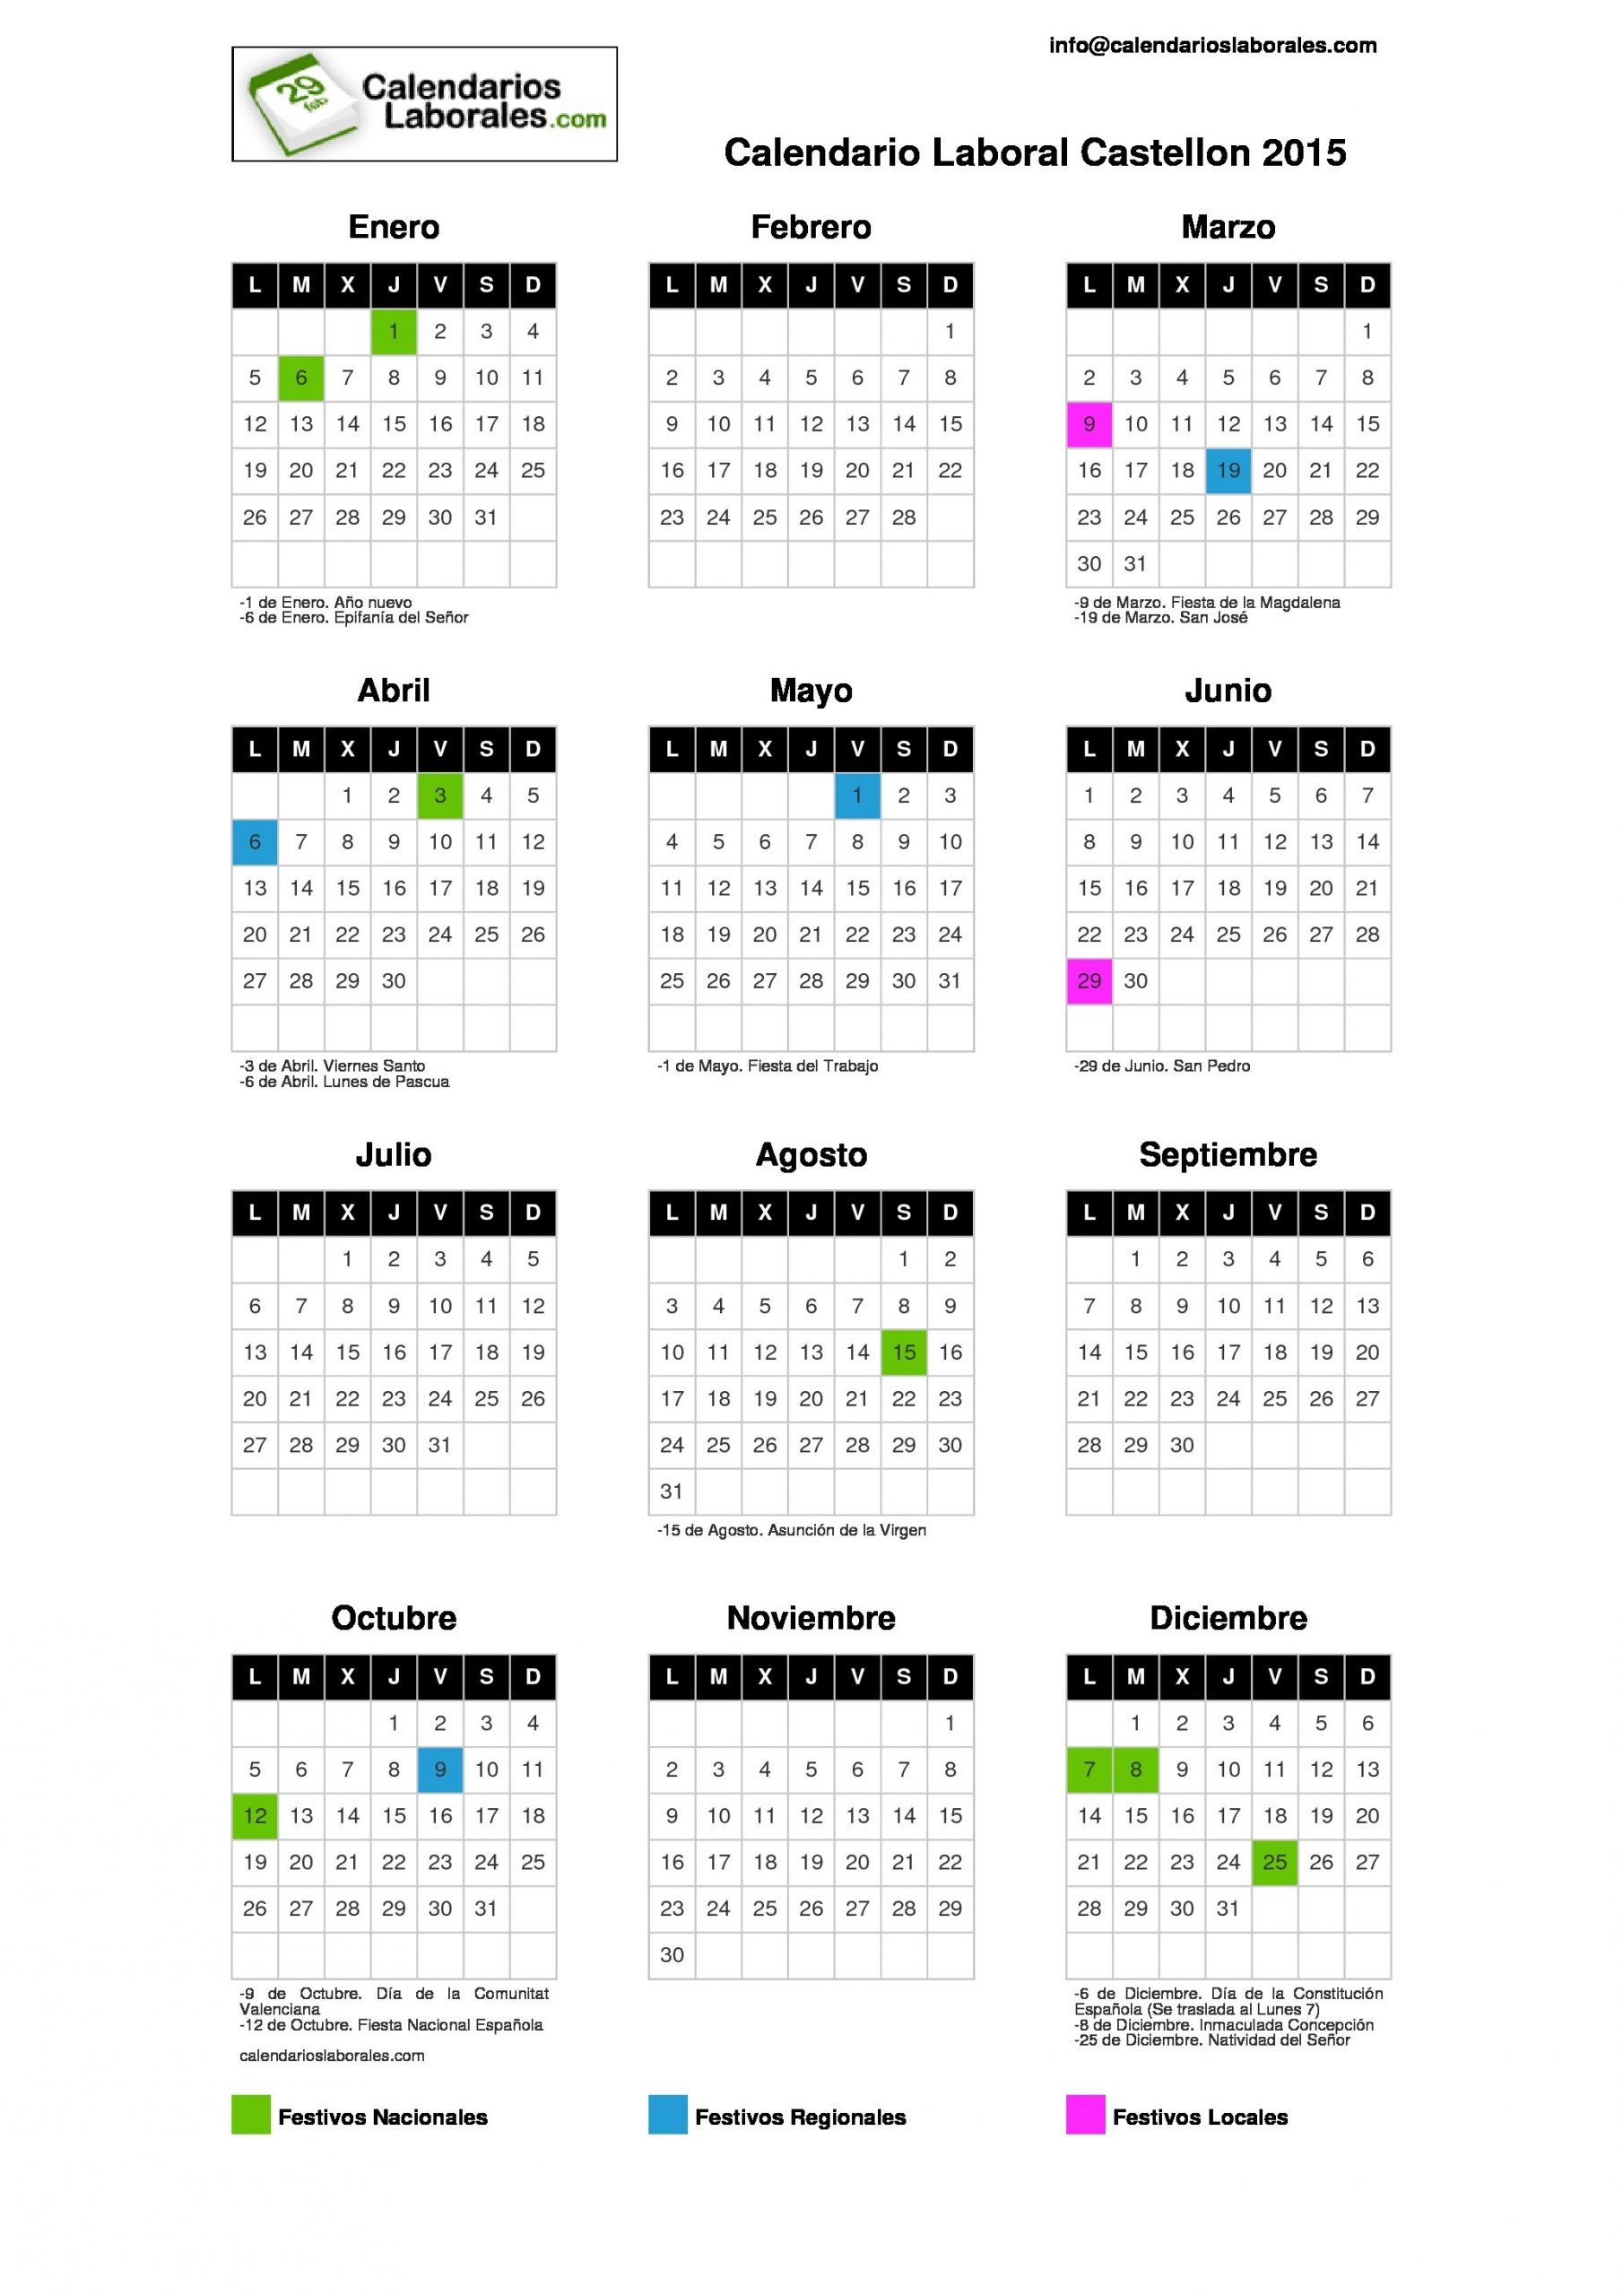 calendario laboral castellon 2015